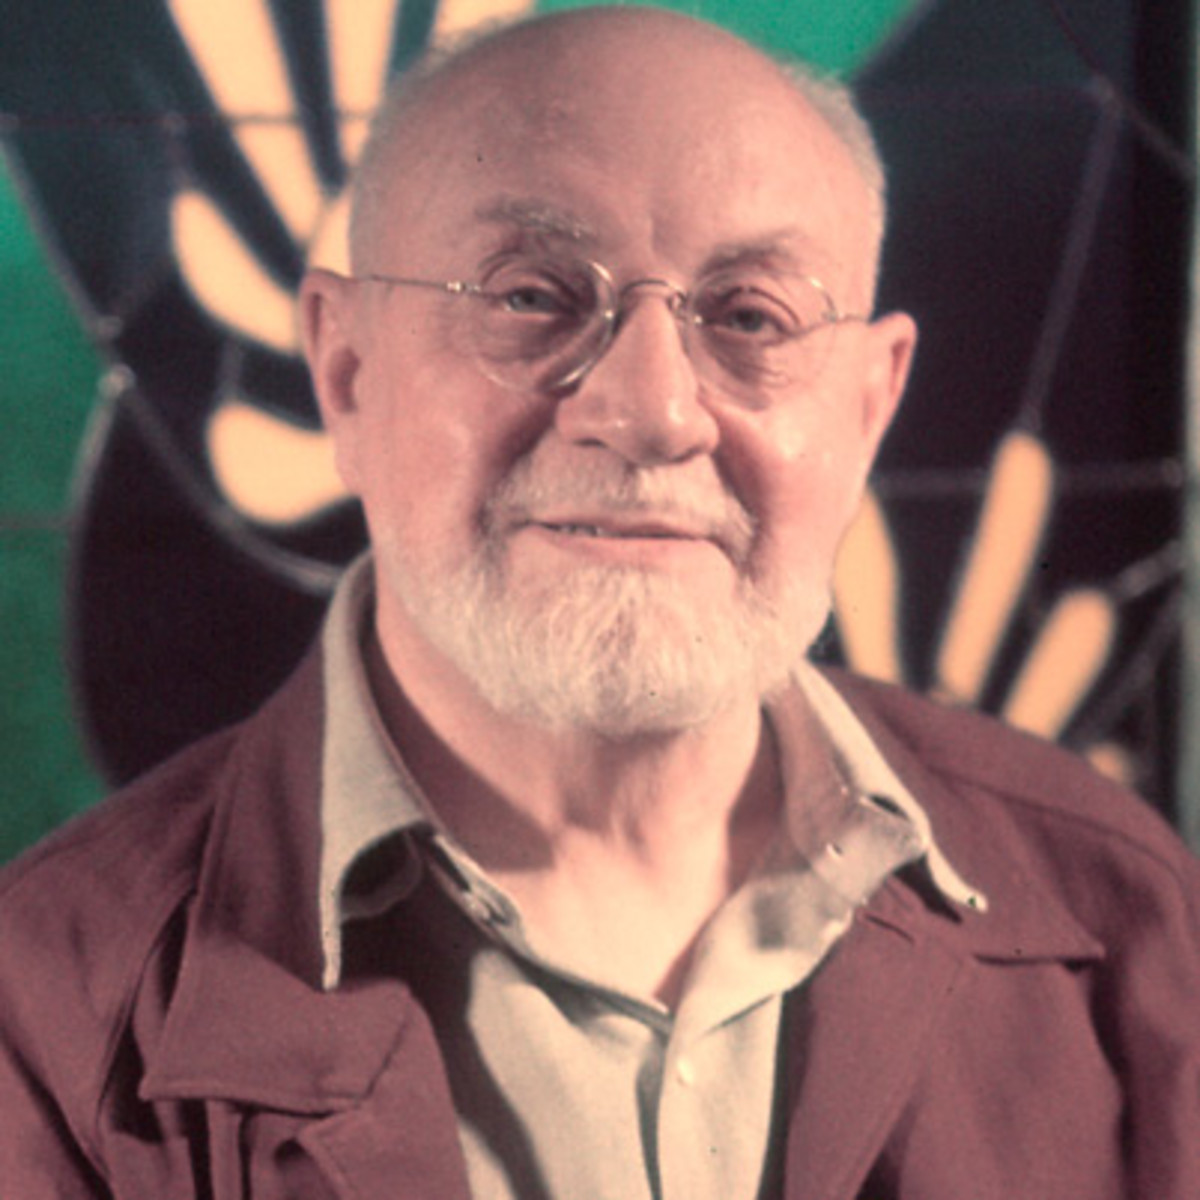 Henri Matisse - Paintings, Artworks & Facts - Biography